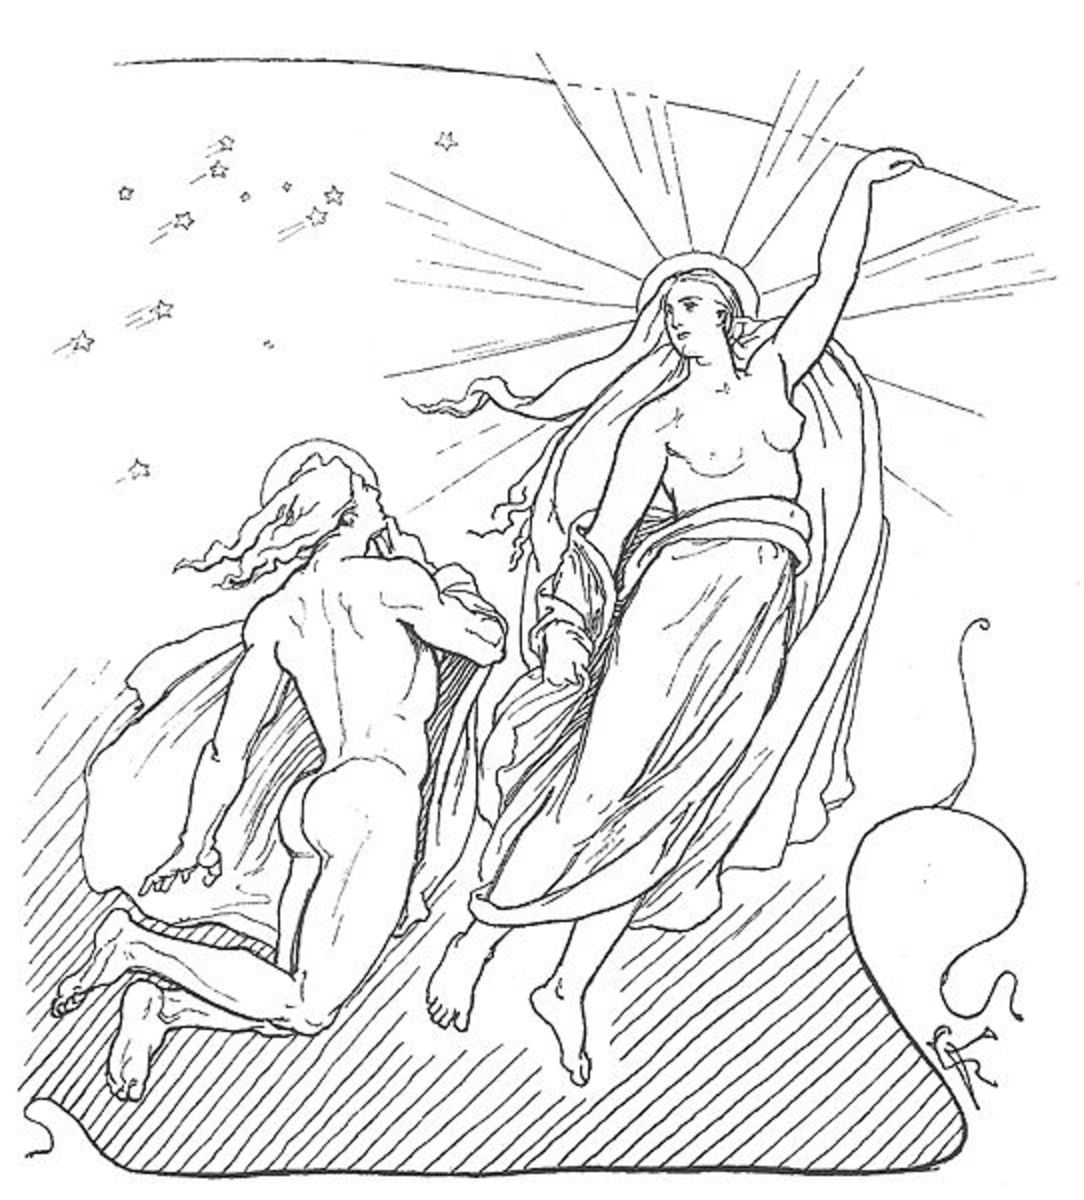 A depiction of Mni, the personified moon, and his sister Sl, the personified sun